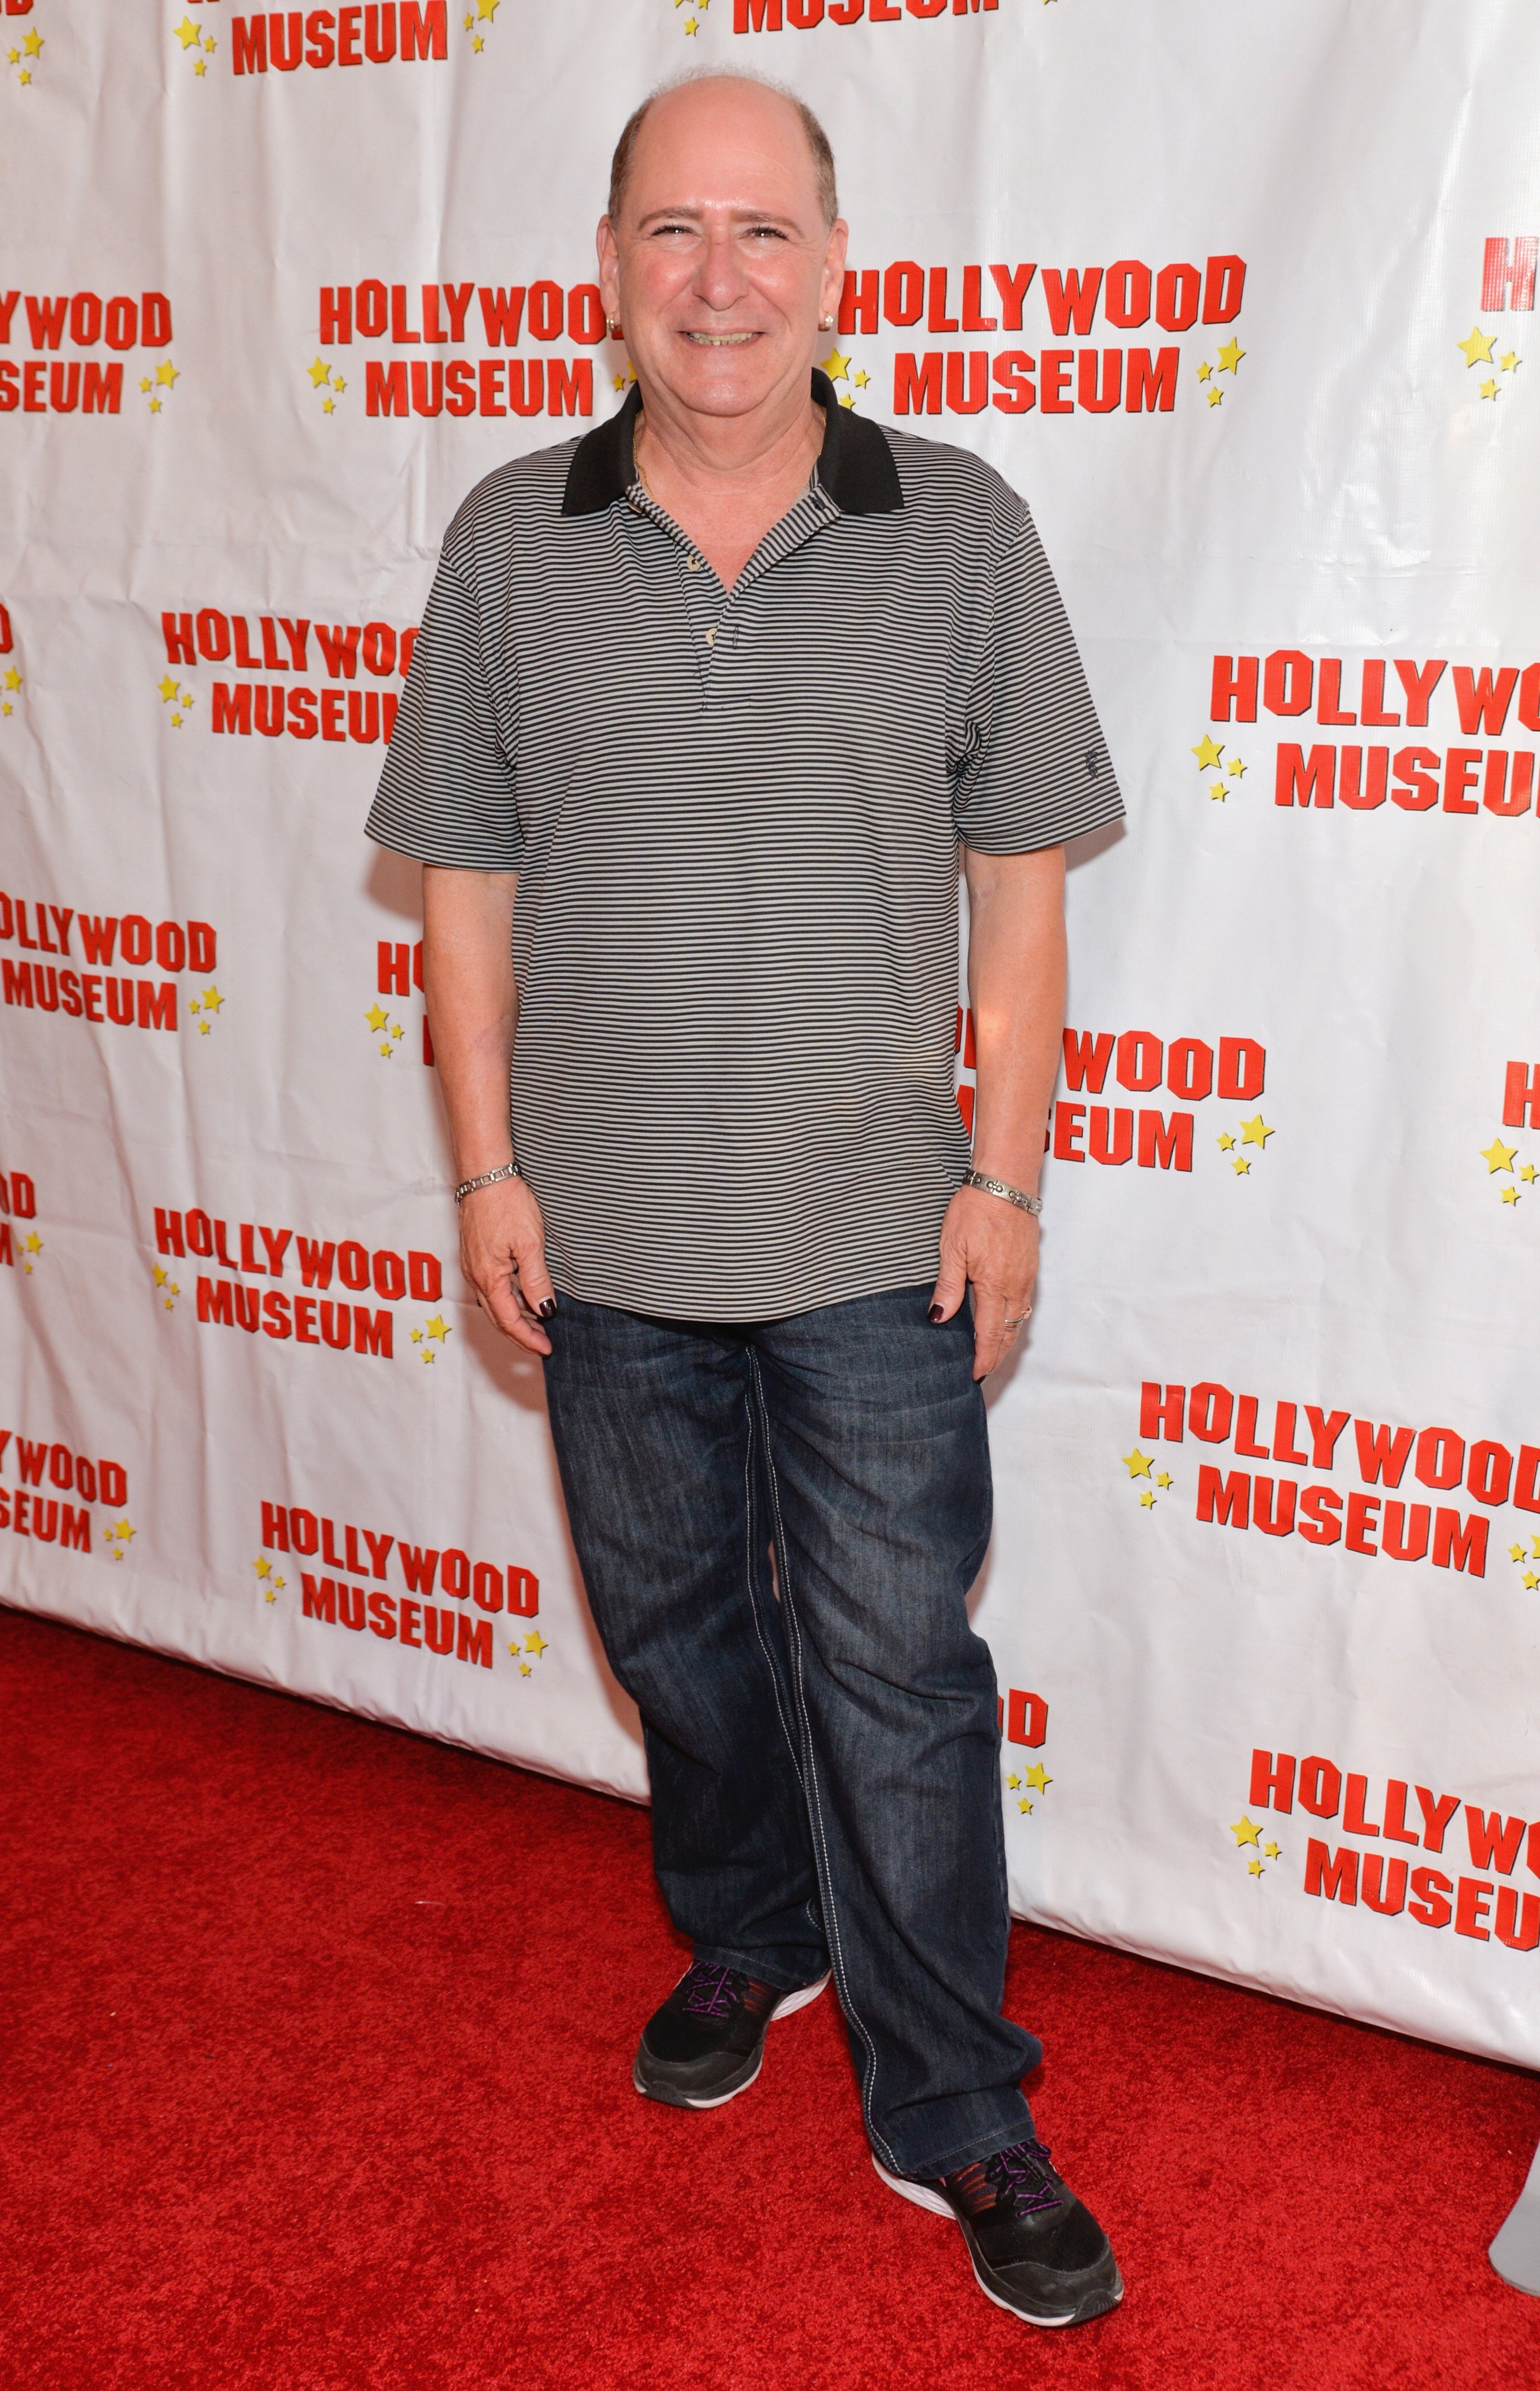 """Larry Mathews attends a preview of The Hollywood Museum's """"Child Stars - Then And Now"""" exhibit at The Hollywood Museum.   Source: Getty Images"""